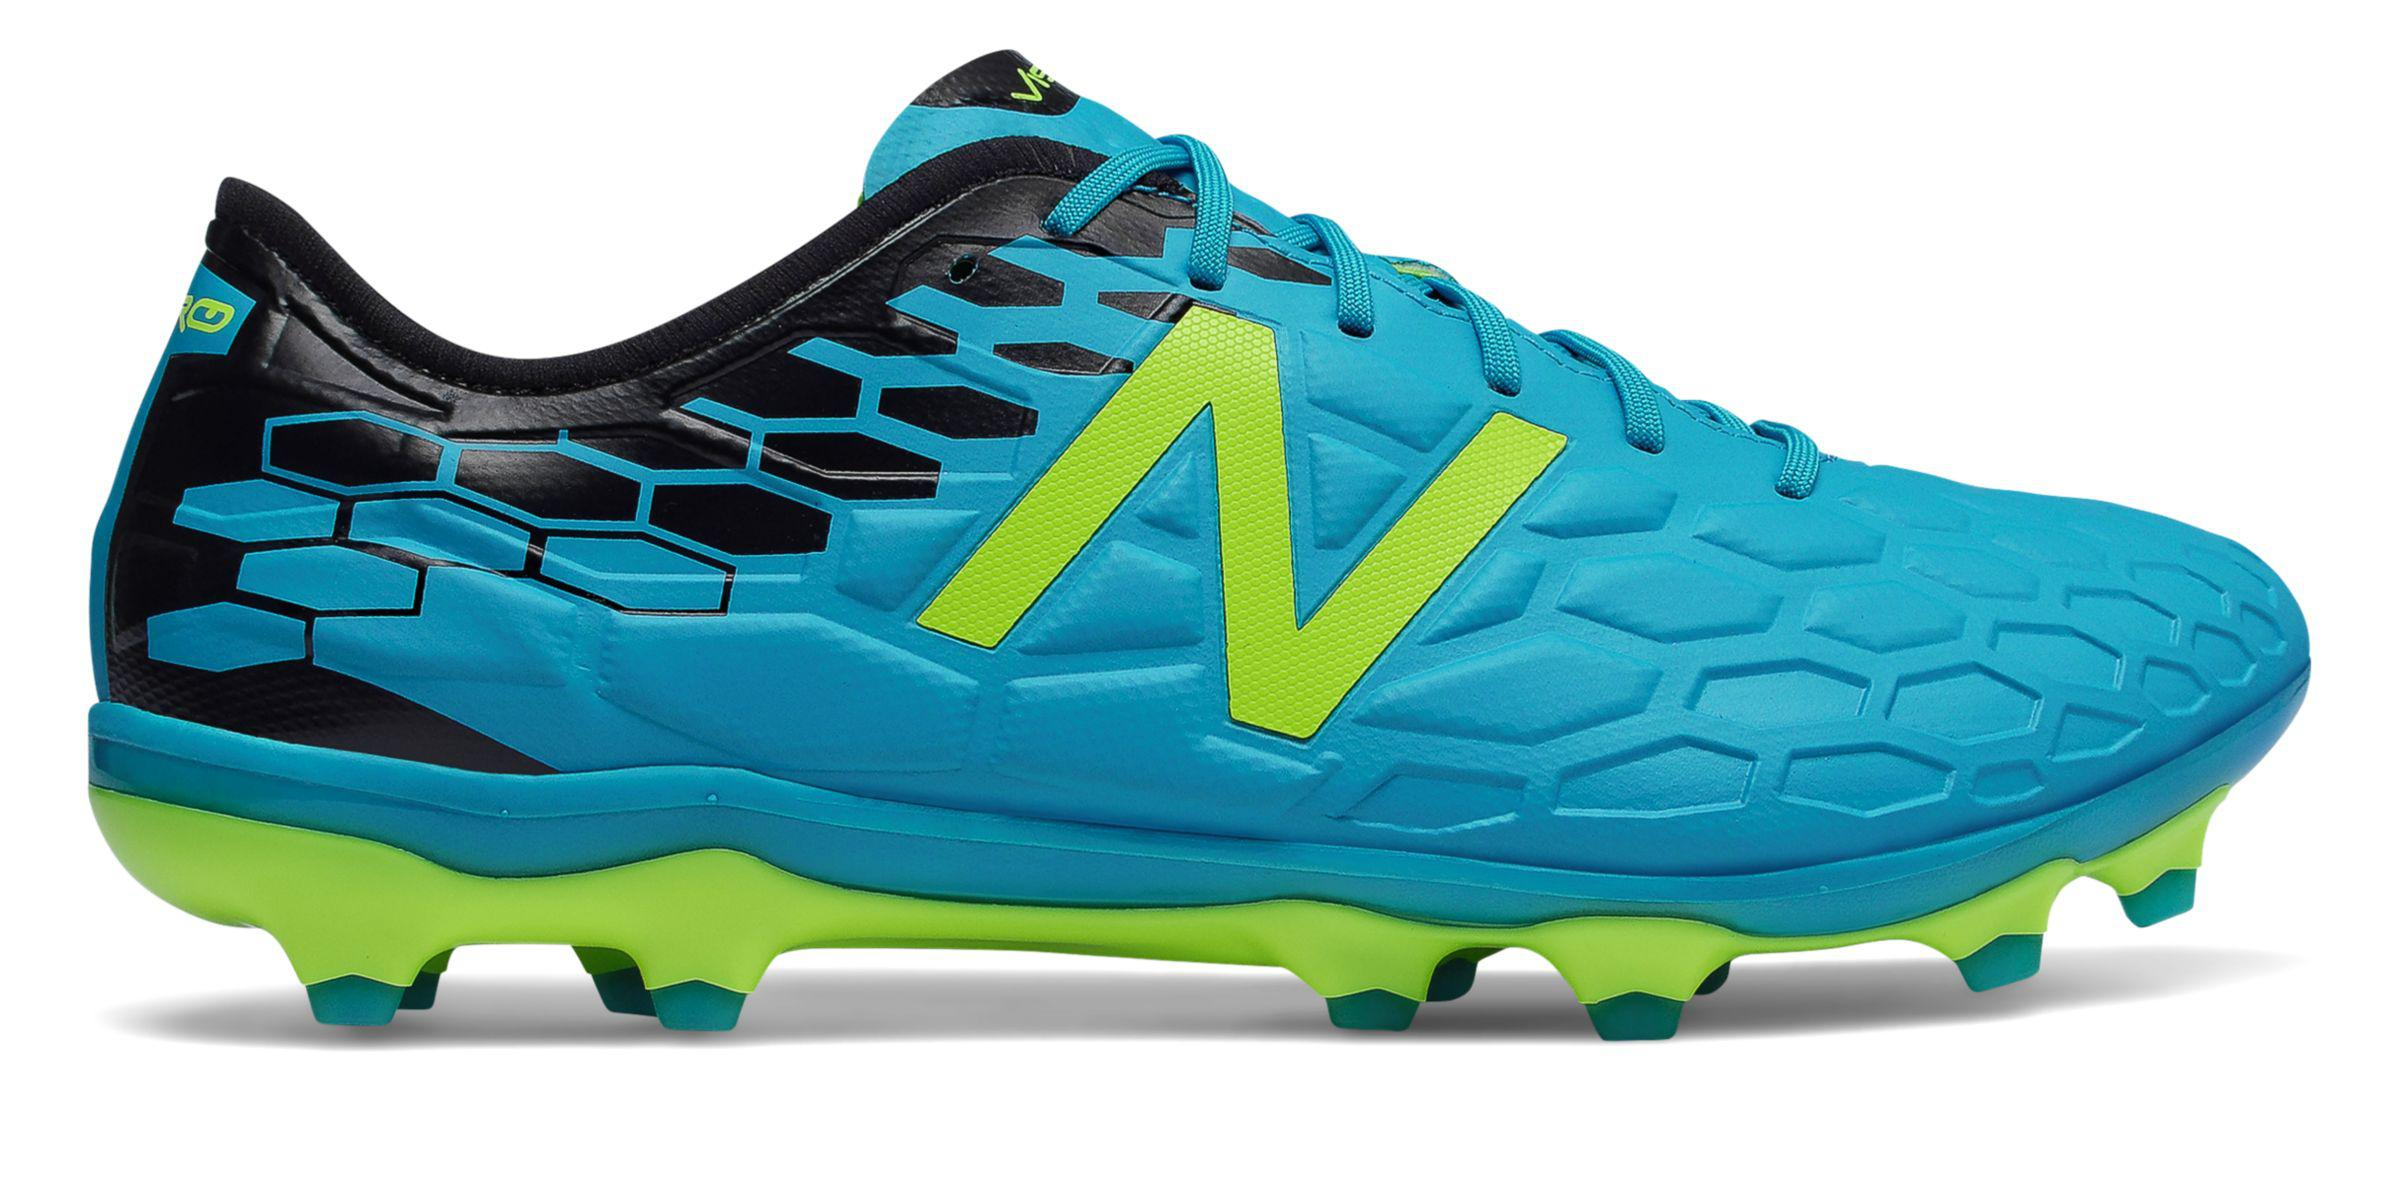 37f19f5a406 Lyst - New Balance Visaro 2.0 Pro Fg in Blue for Men